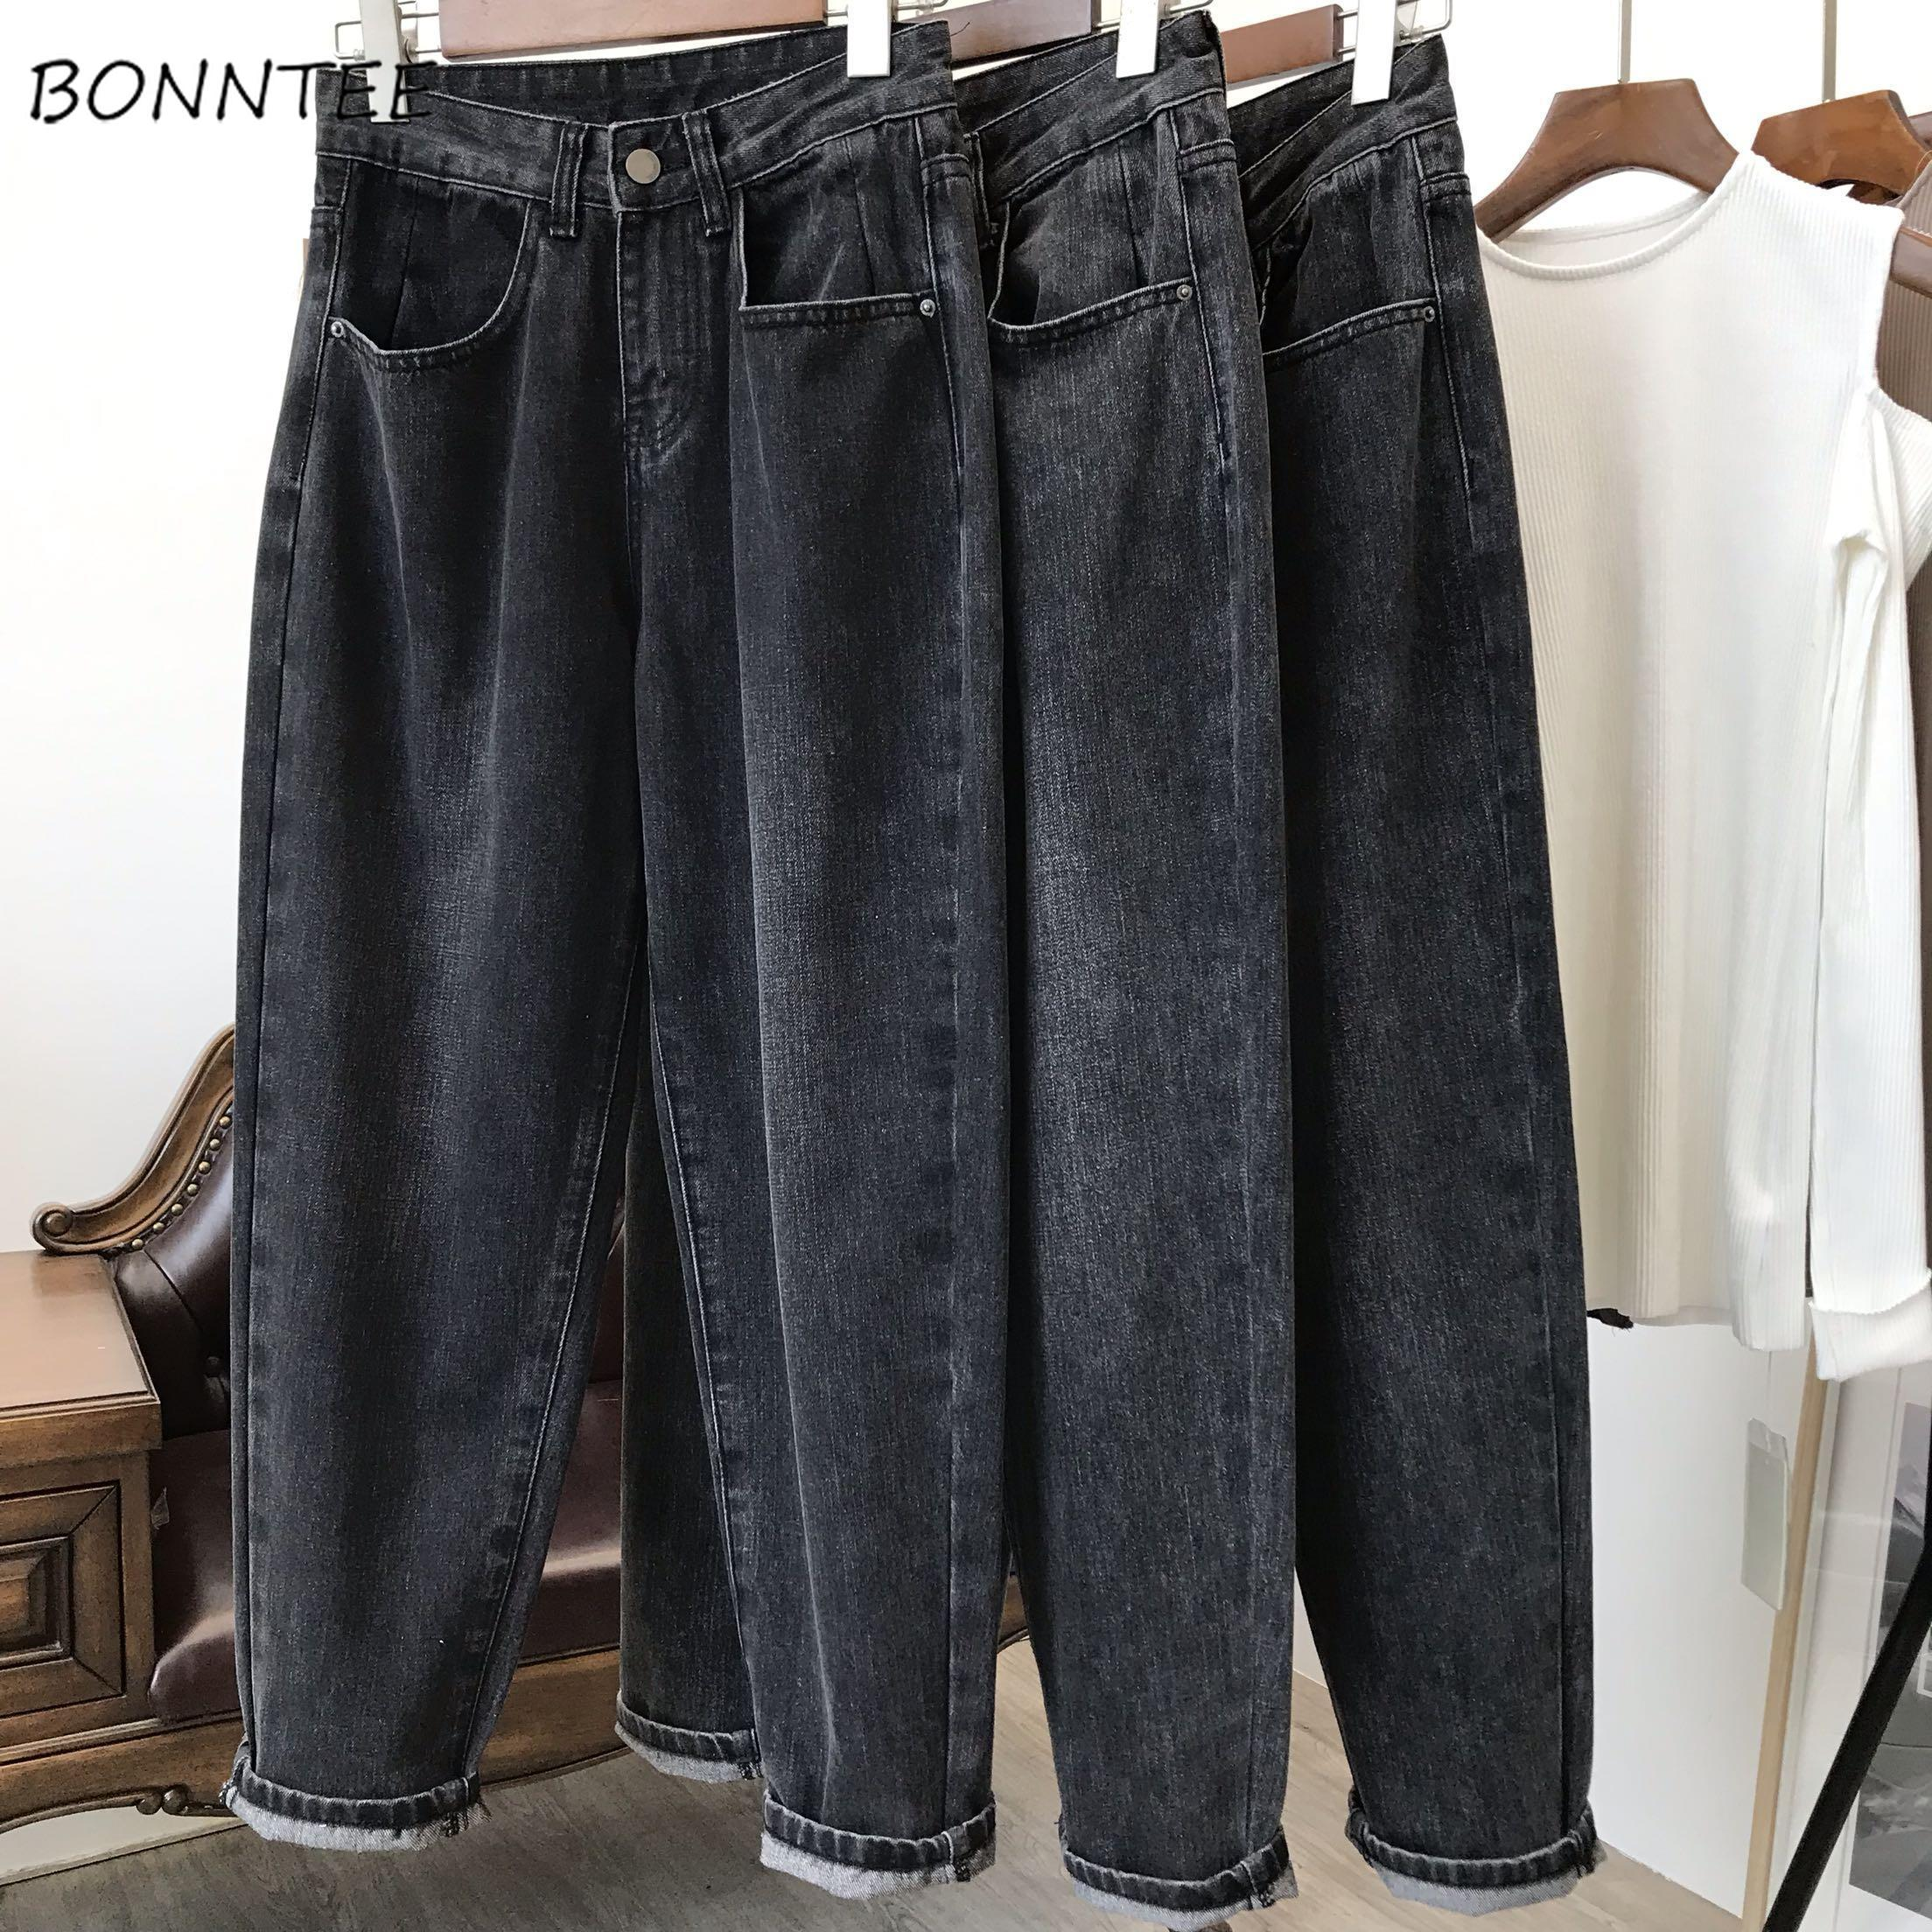 Jeans Women Ankle-length High Waist Straight All-match Womens Trousers Harajuku Pockets Daily Casual Fashion BF Loose 2XL Chic